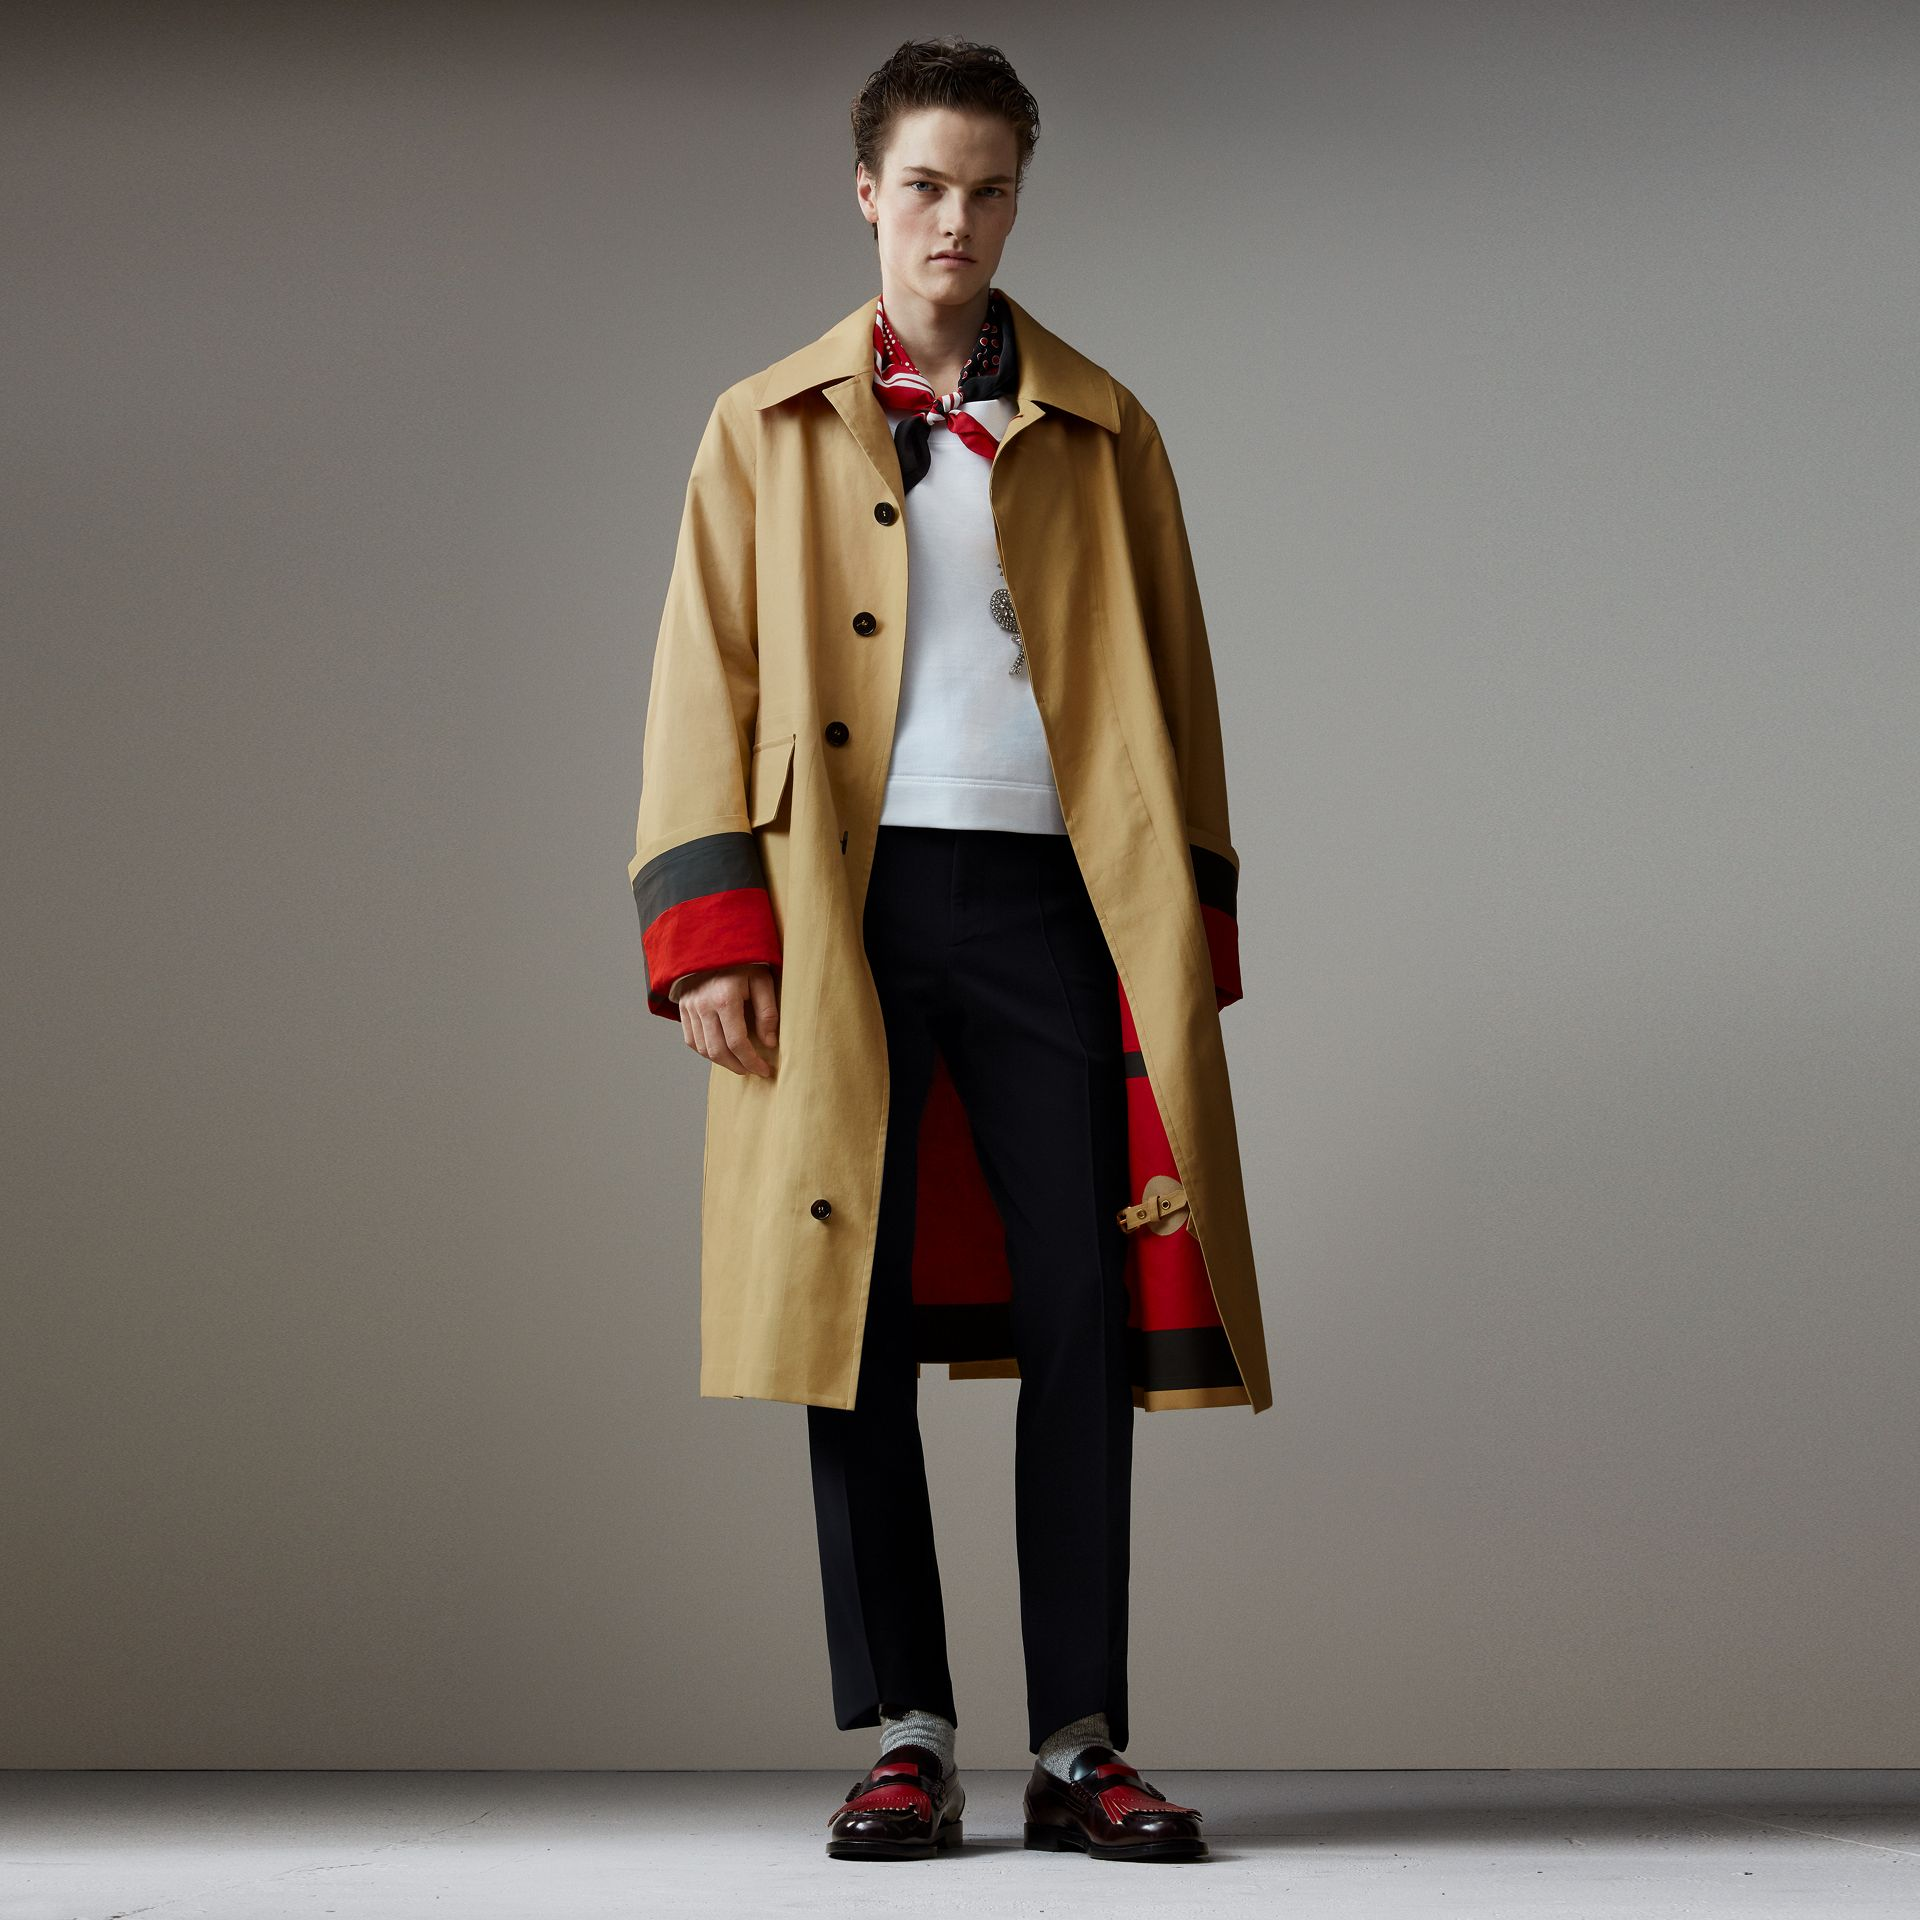 Bonded Cotton Oversized Seam-sealed Car Coat in Beige/red - Men | Burberry Canada - gallery image 0